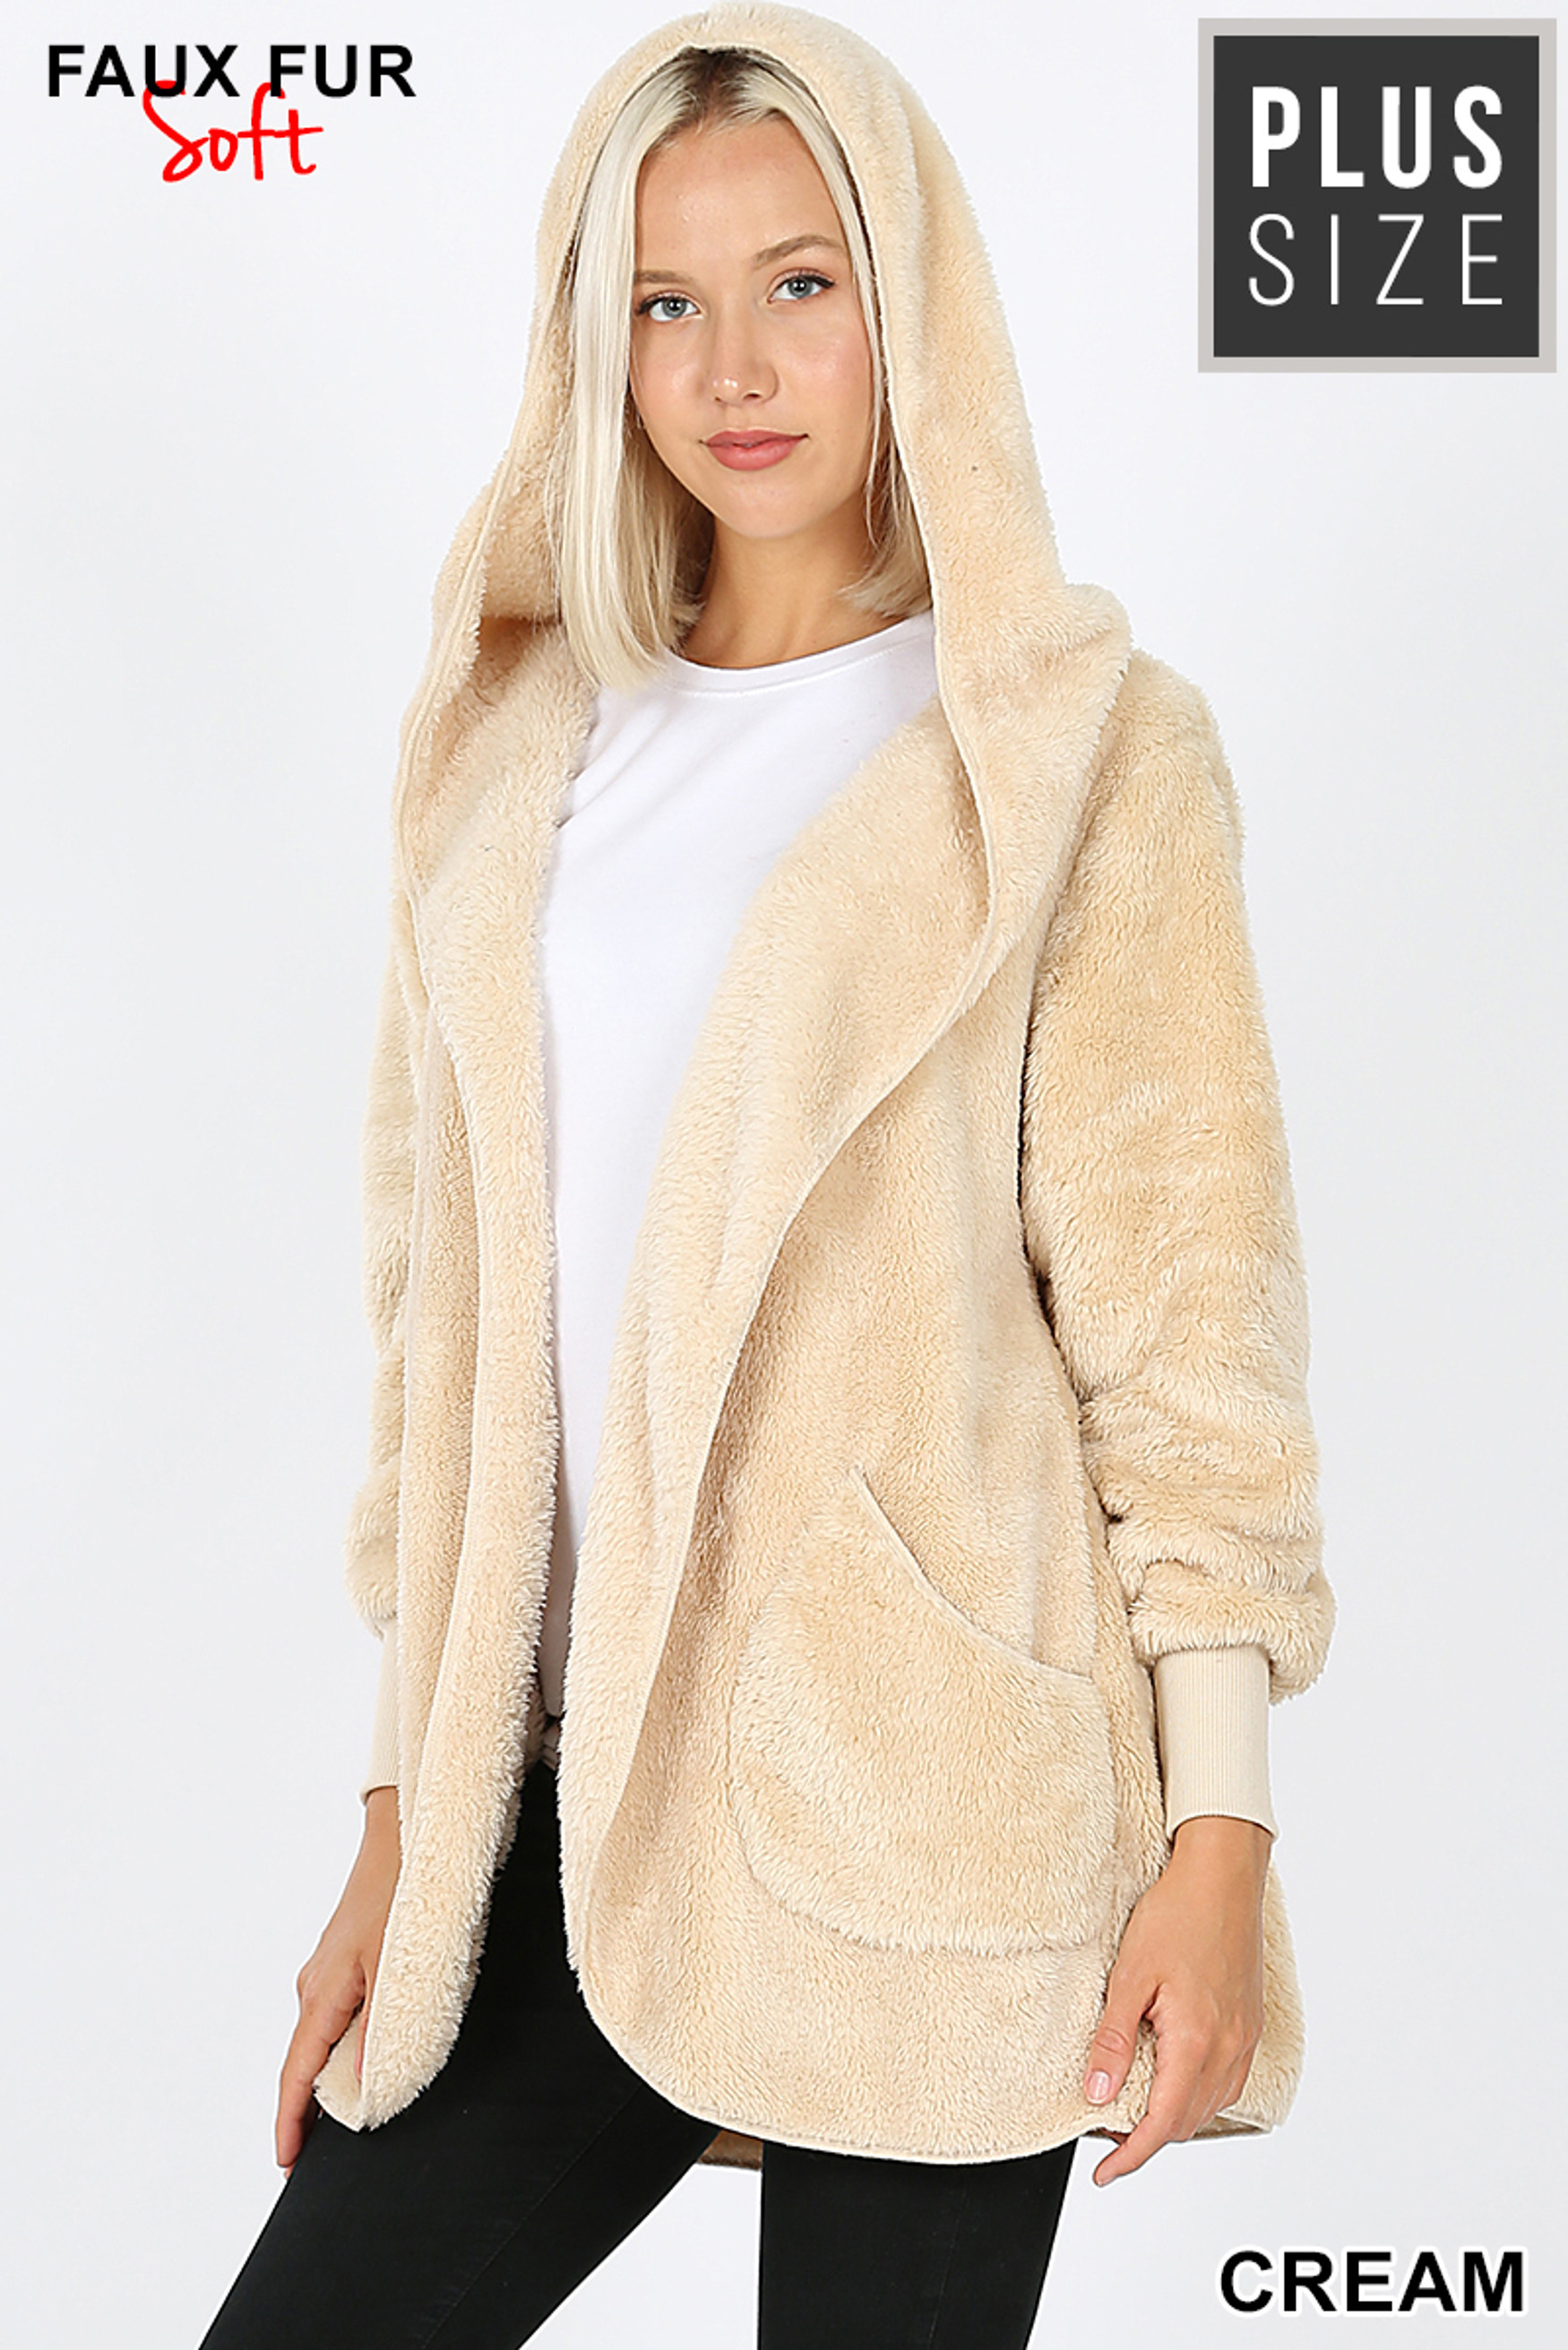 Front Image of Cream Faux Fur Hooded Cocoon Plus Size Jacket with Pockets showing hood up